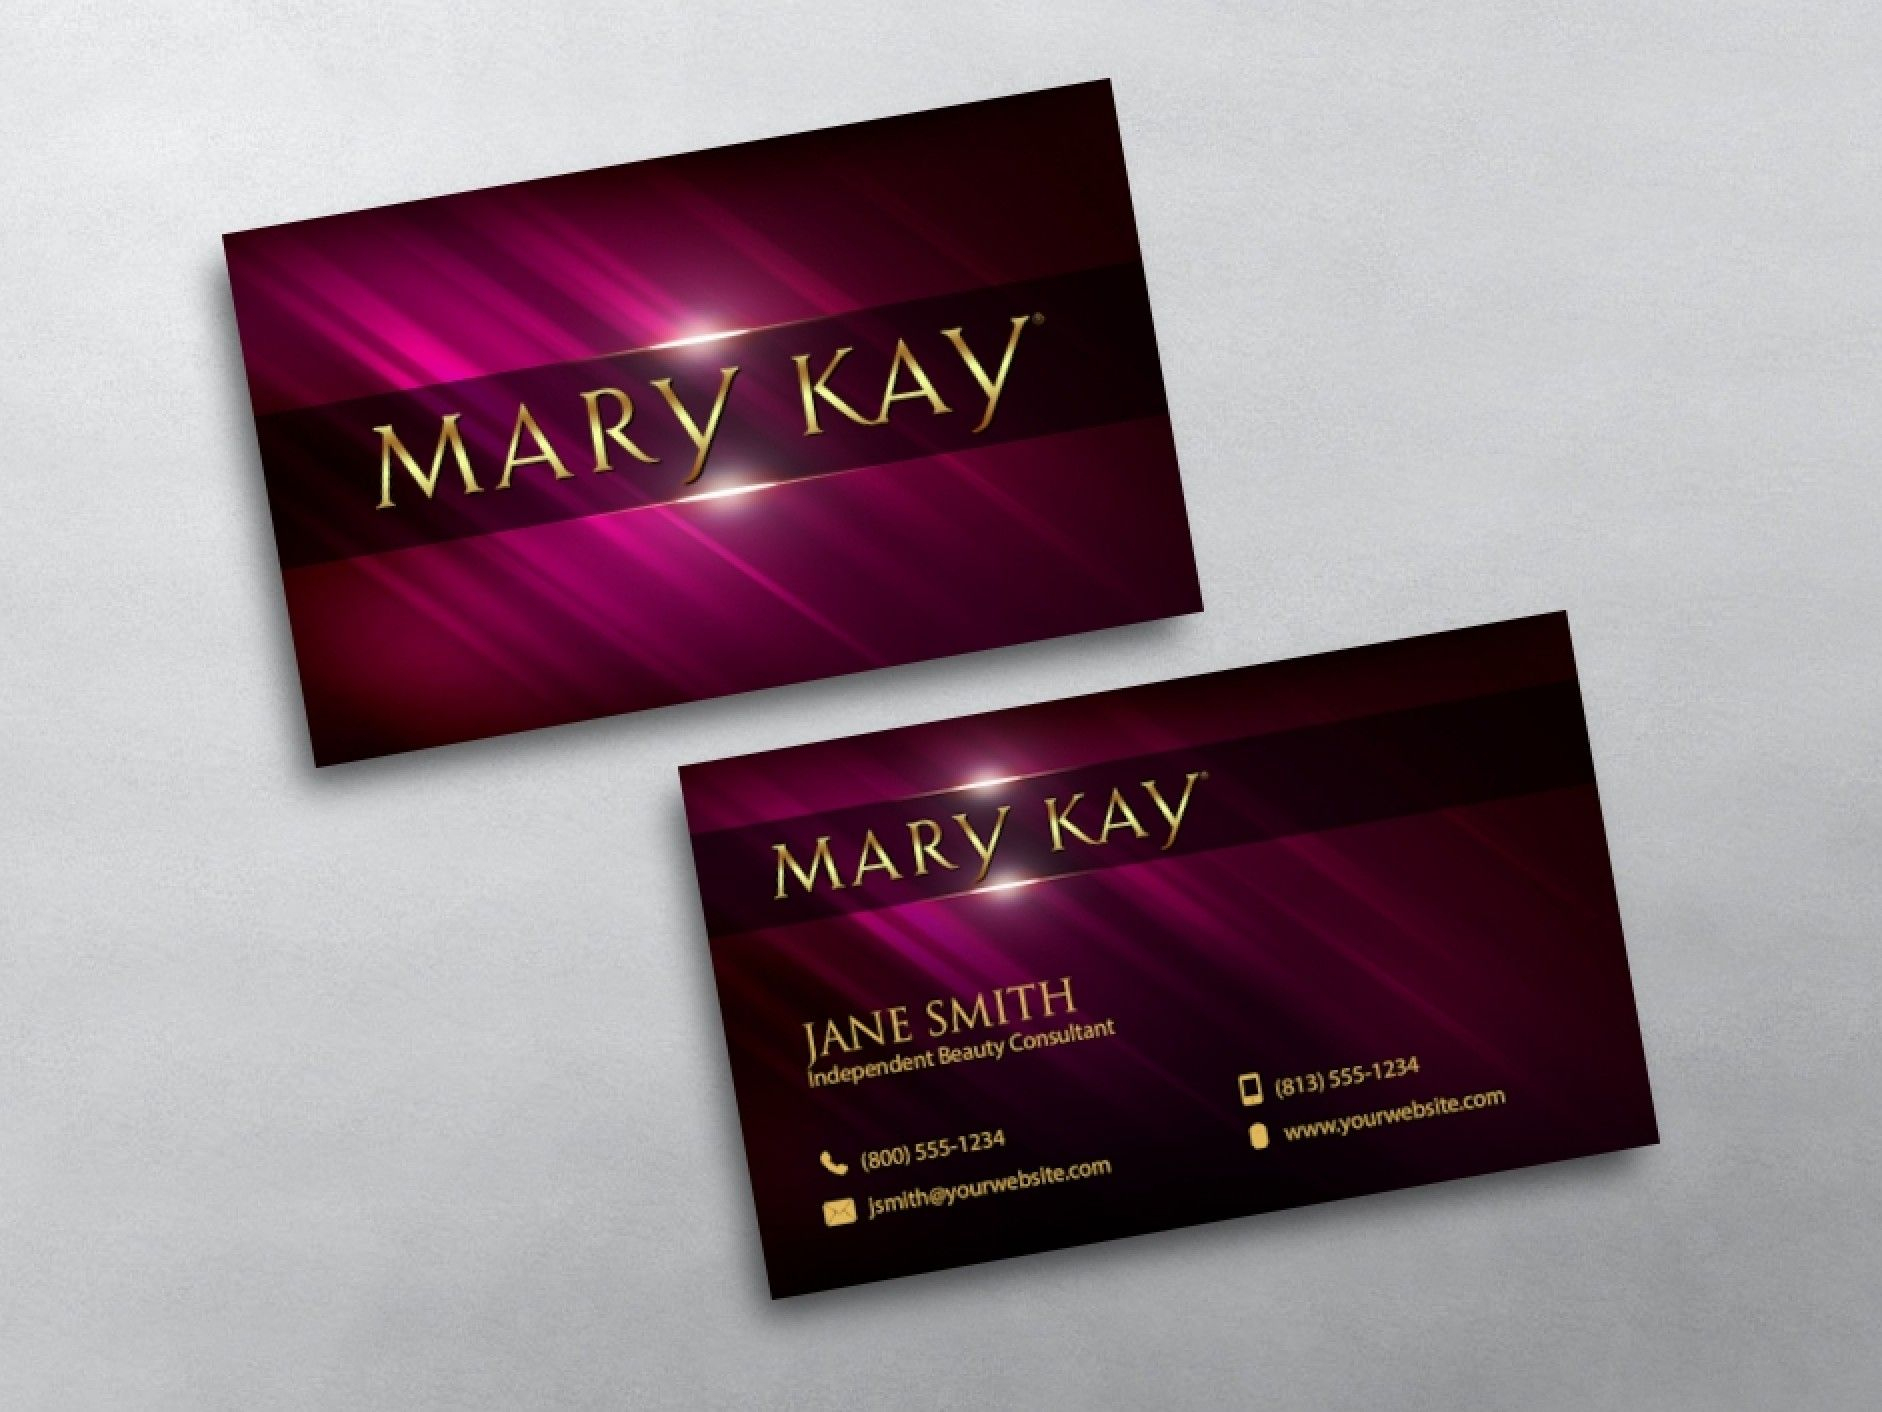 Mary Kay Business Cards In 2019 | Pink Dreams | Pinterest | Free - Free Printable Mary Kay Business Cards